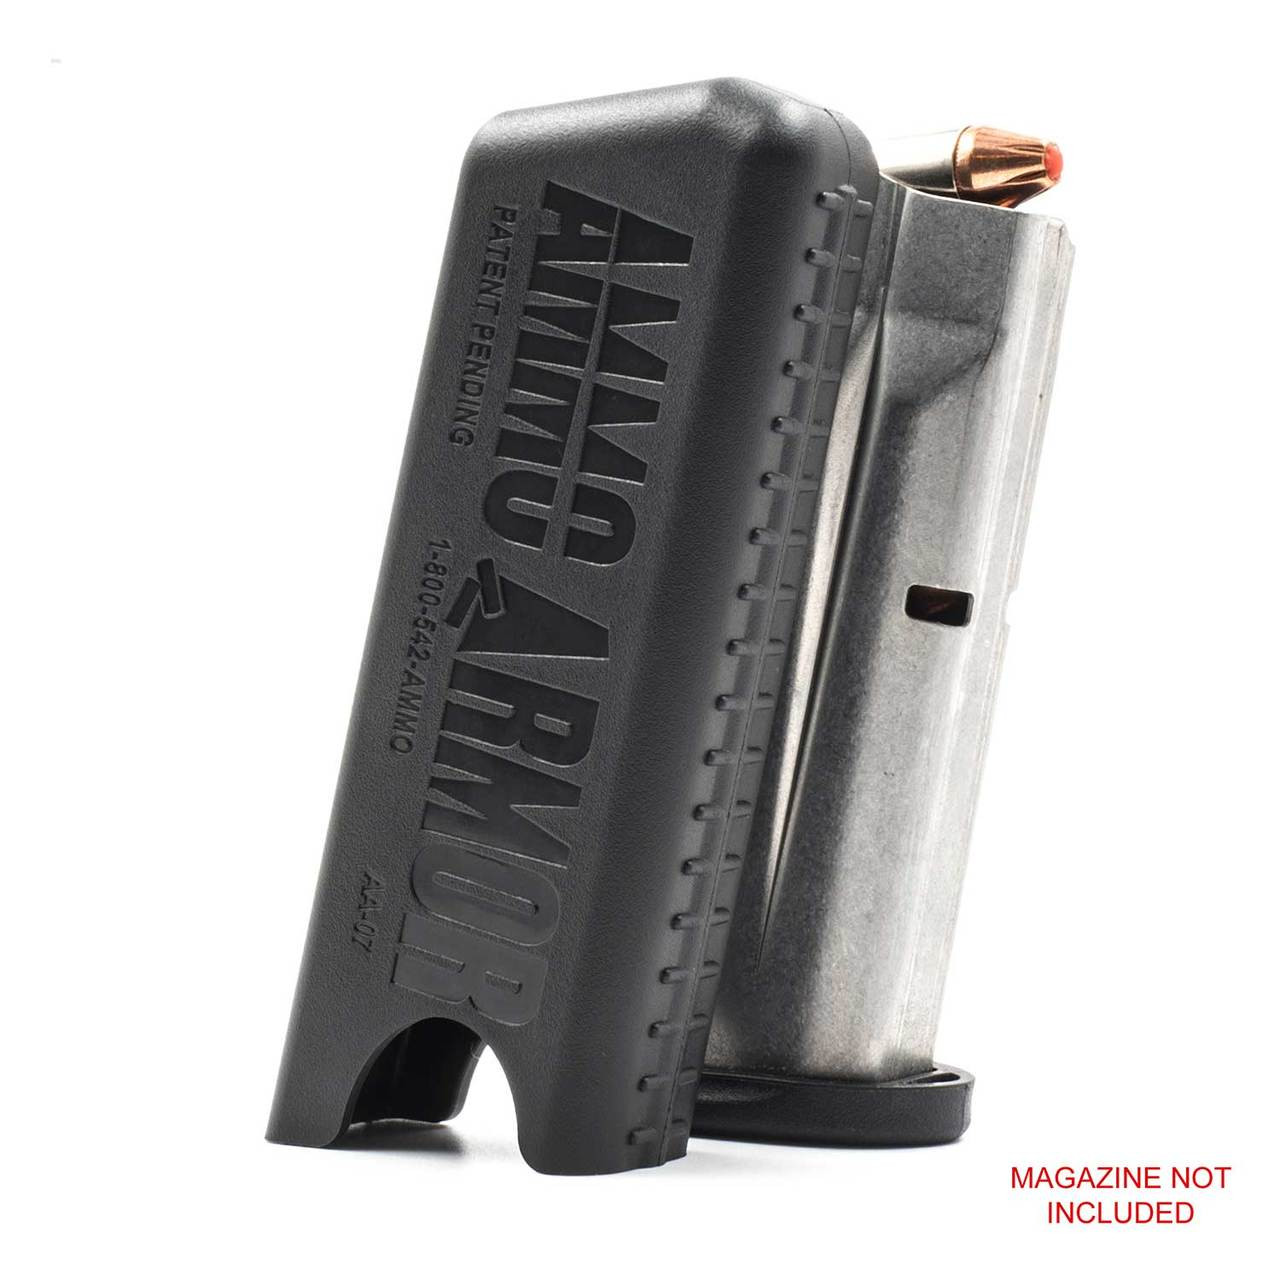 Smith & Wesson M&P Shield 40 Magazine Protector